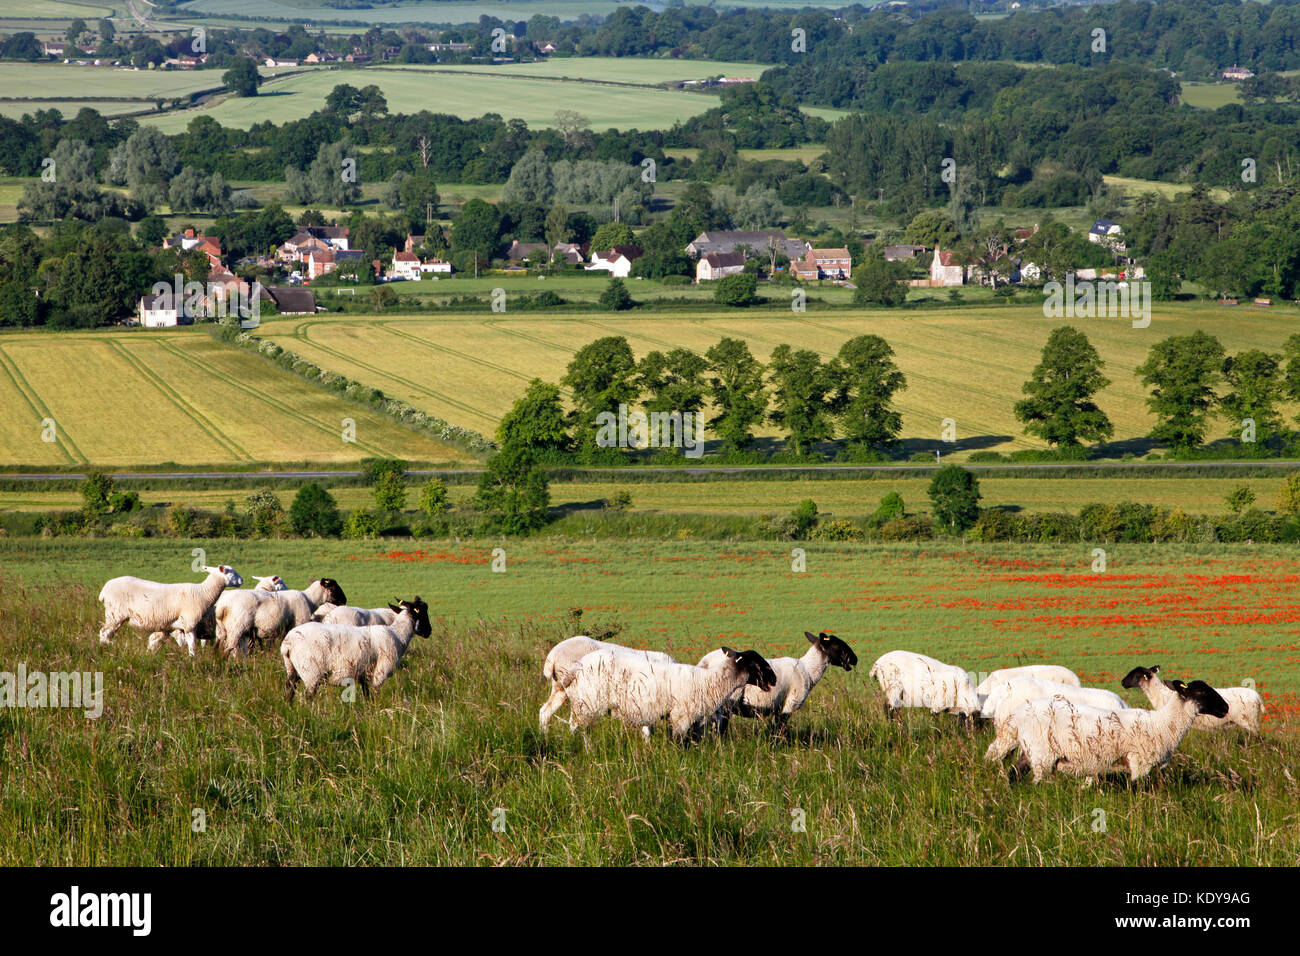 Sheep grazing on Scratchbury Hill, near Warminster in Wiltshire, overlooking the village of Norton Bavant. - Stock Image